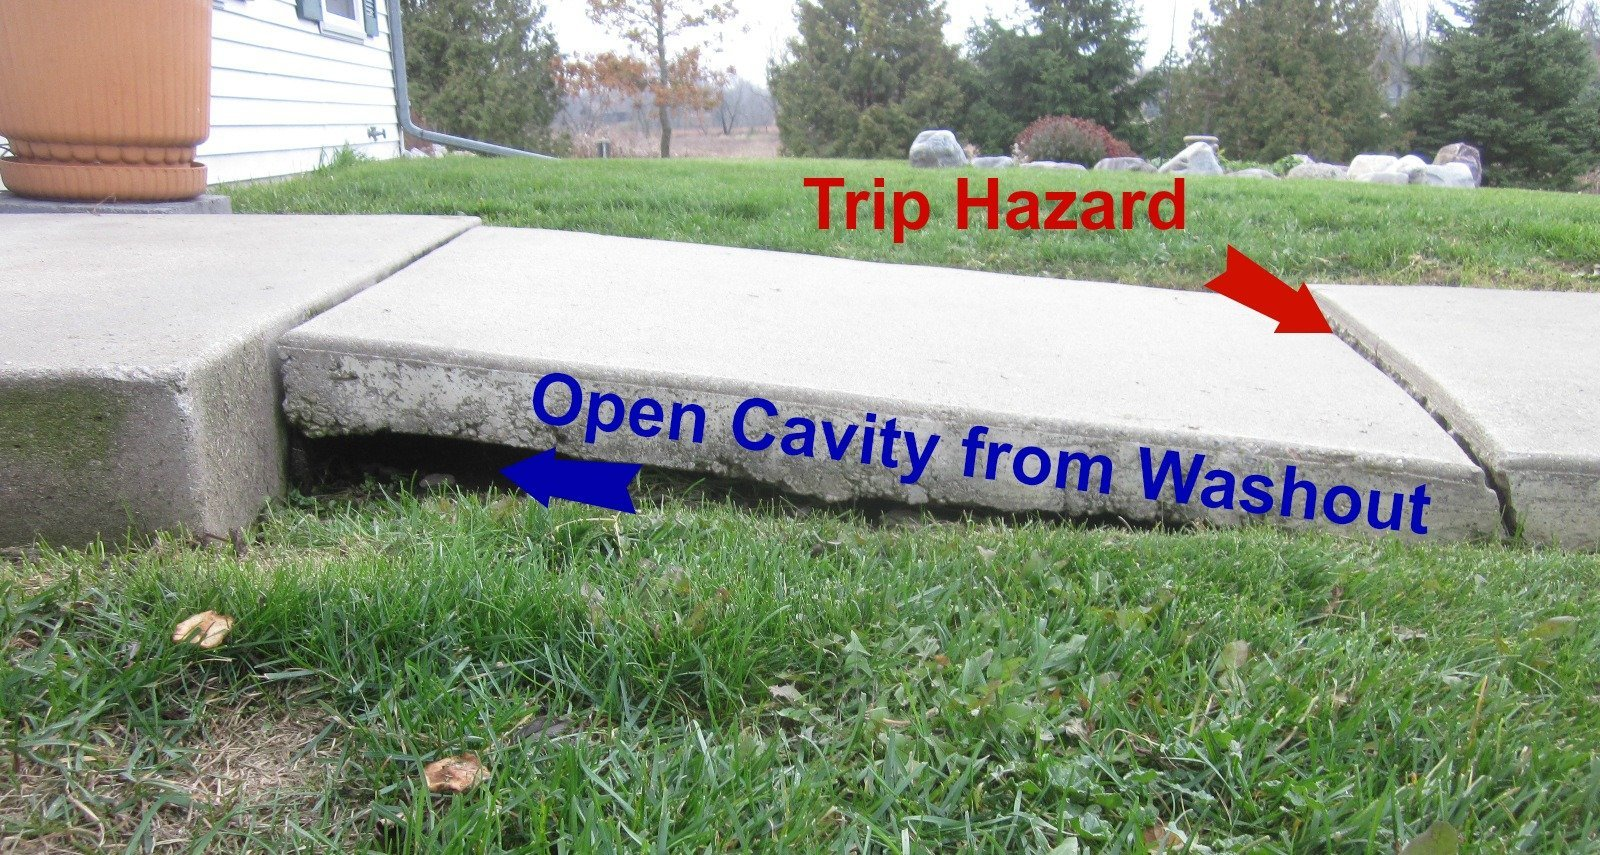 Open cavity from washout